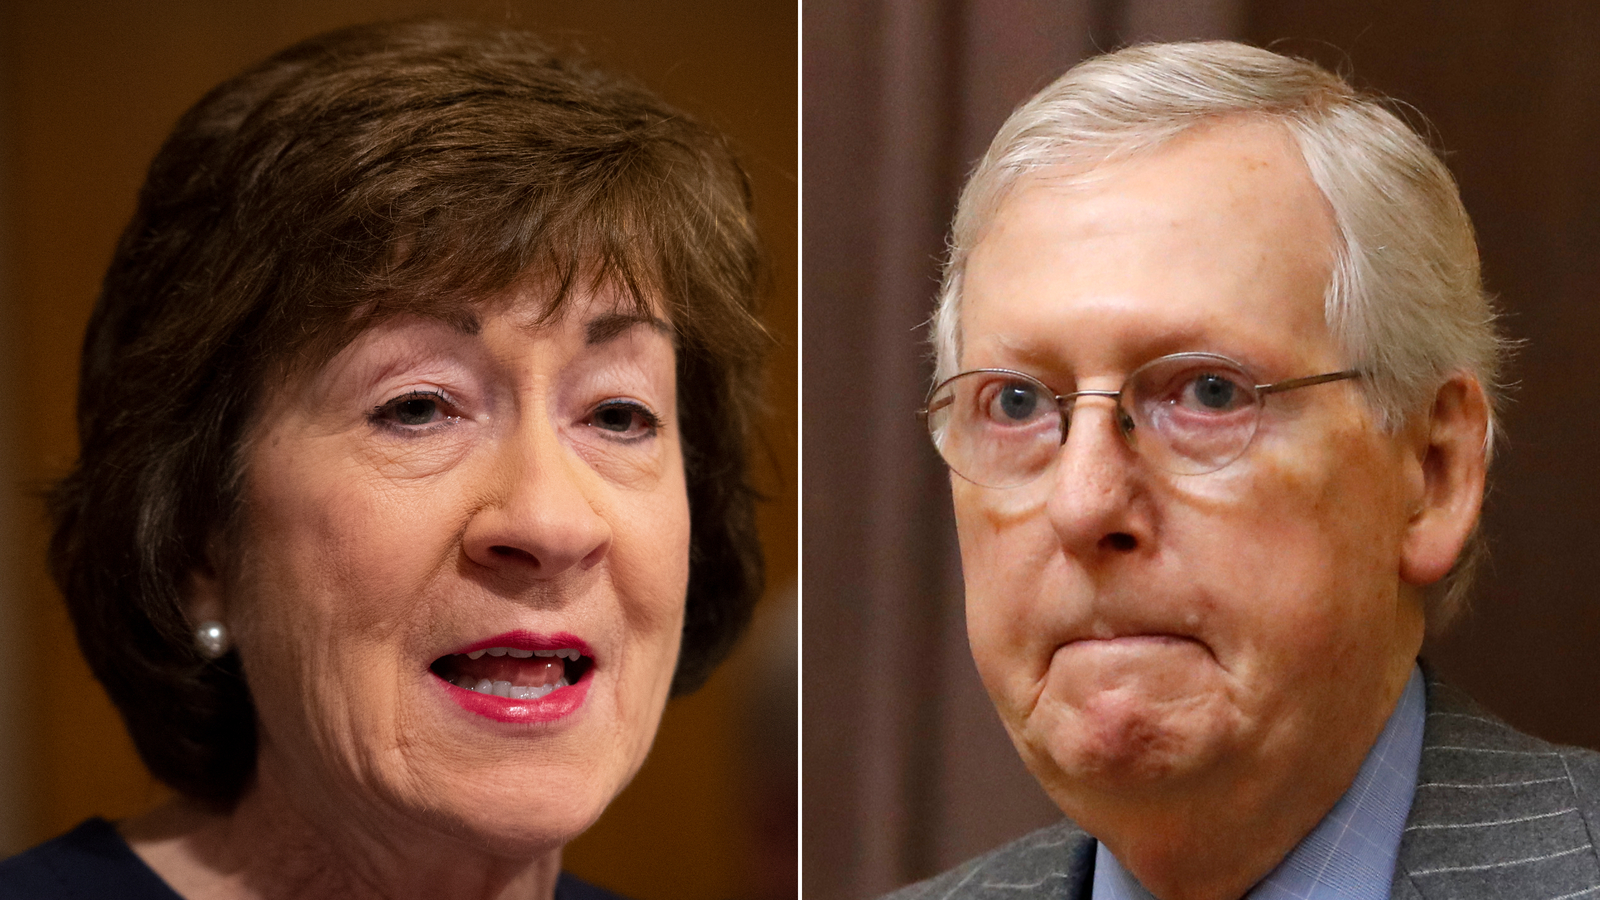 McConnell tries to set trial rules as pressure building on vulnerable senators